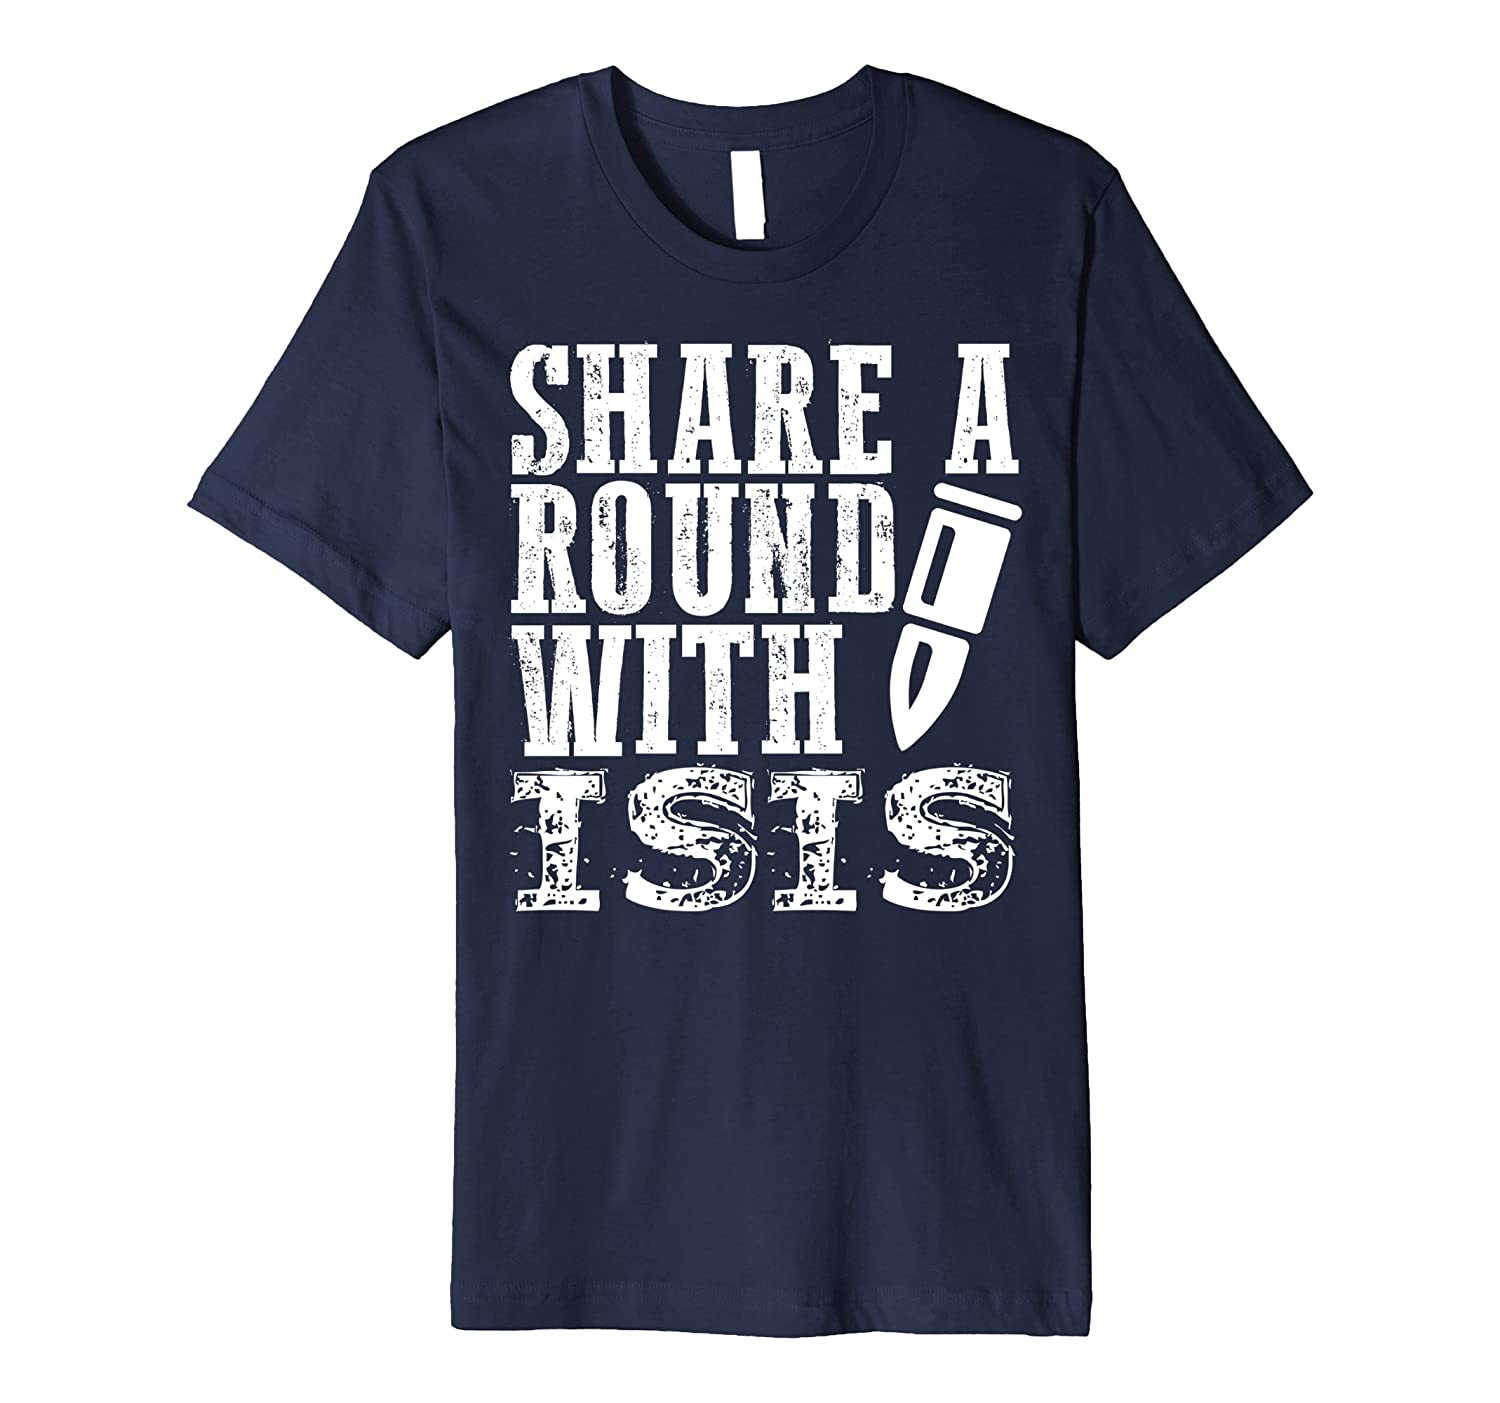 Share A Round With ISIS Shirt